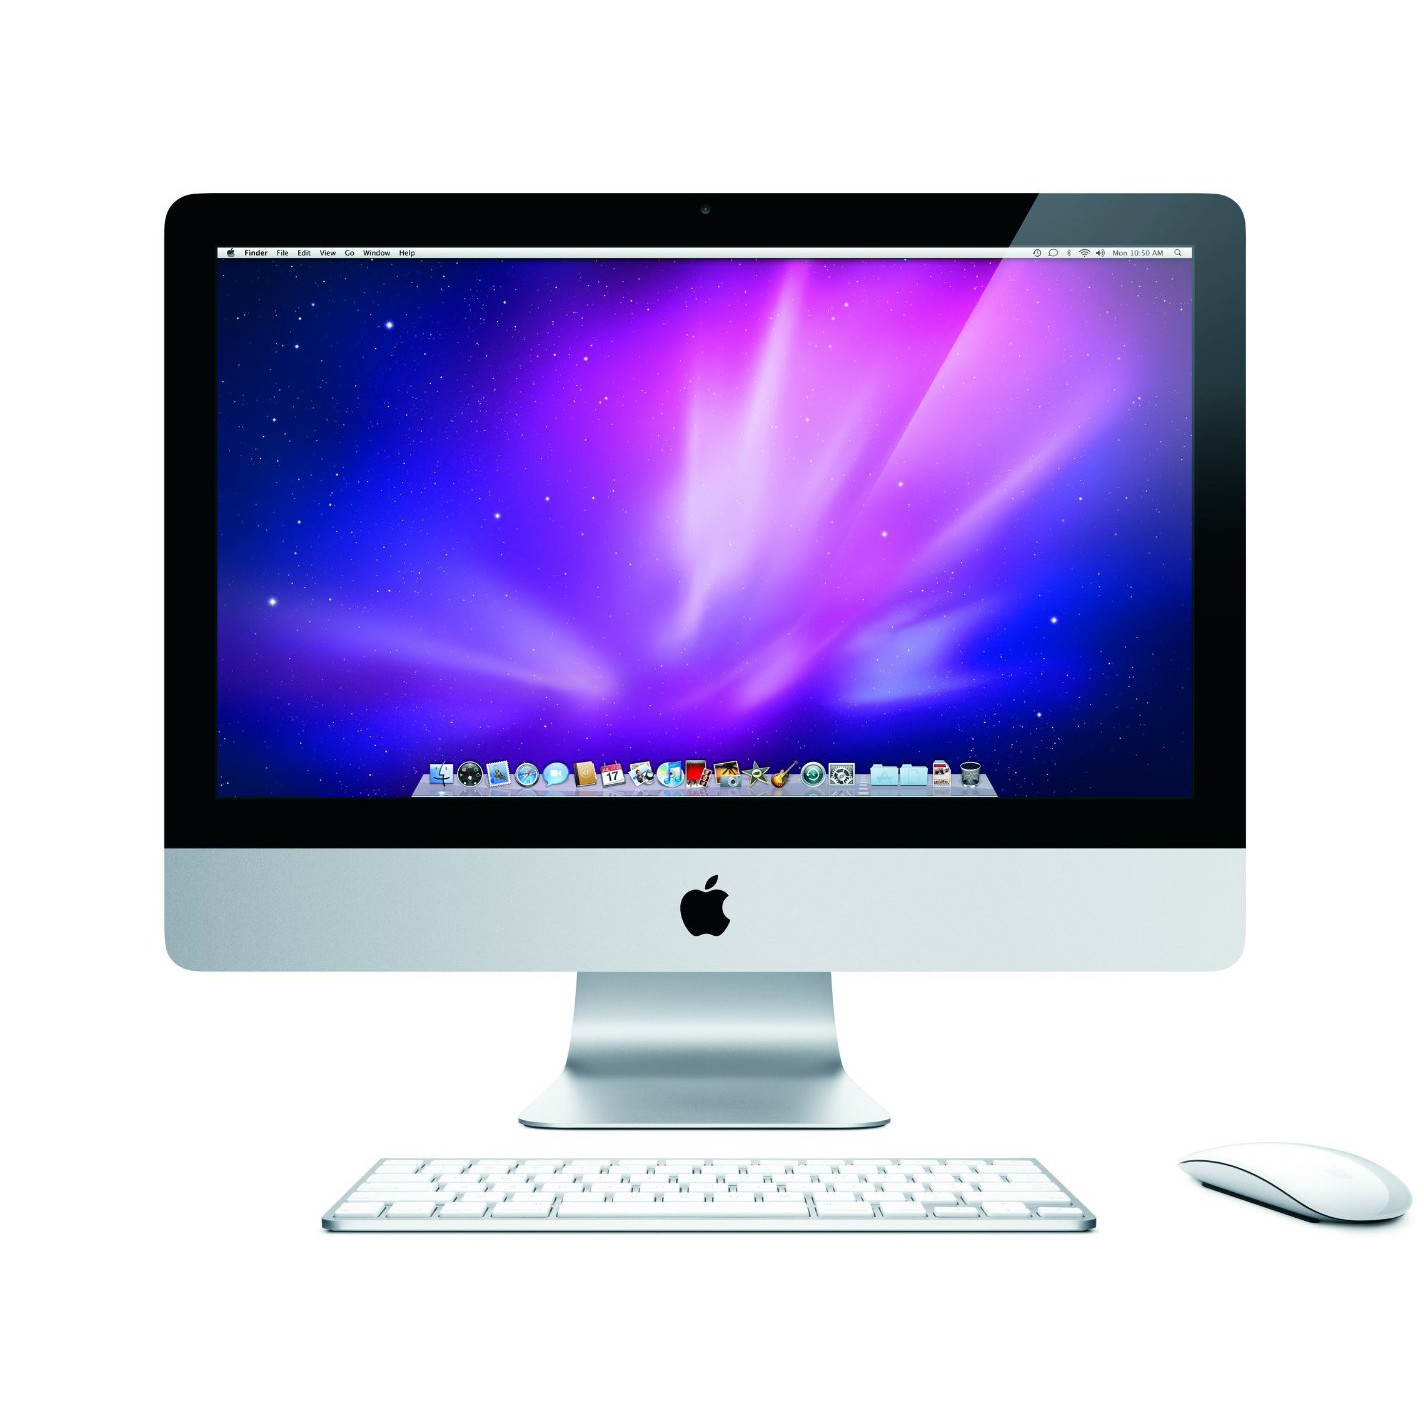 "Refurbished Apple iMac MB950LL/A 21.5"" All-in-One Core 2 Duo E7600 3.06GHz 4GB 500GB GeForce"